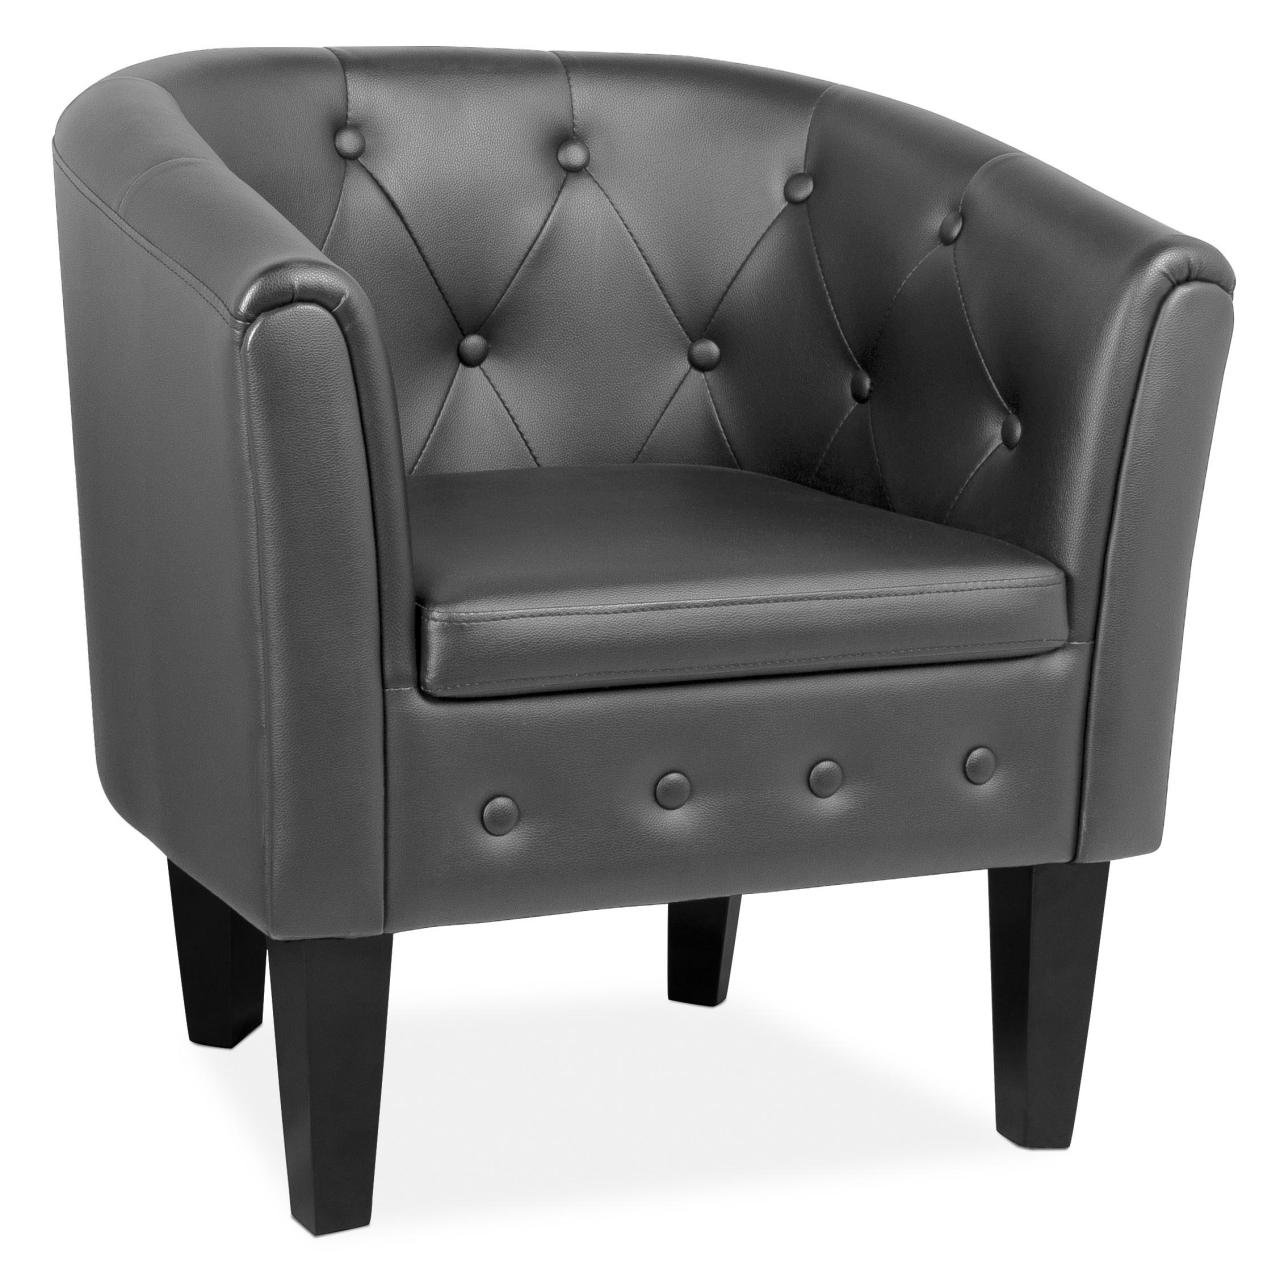 Cocktailsessel schwarz  Homelux Clubsessel Loungesessel Cocktailsessel Chesterfield (L x B ...